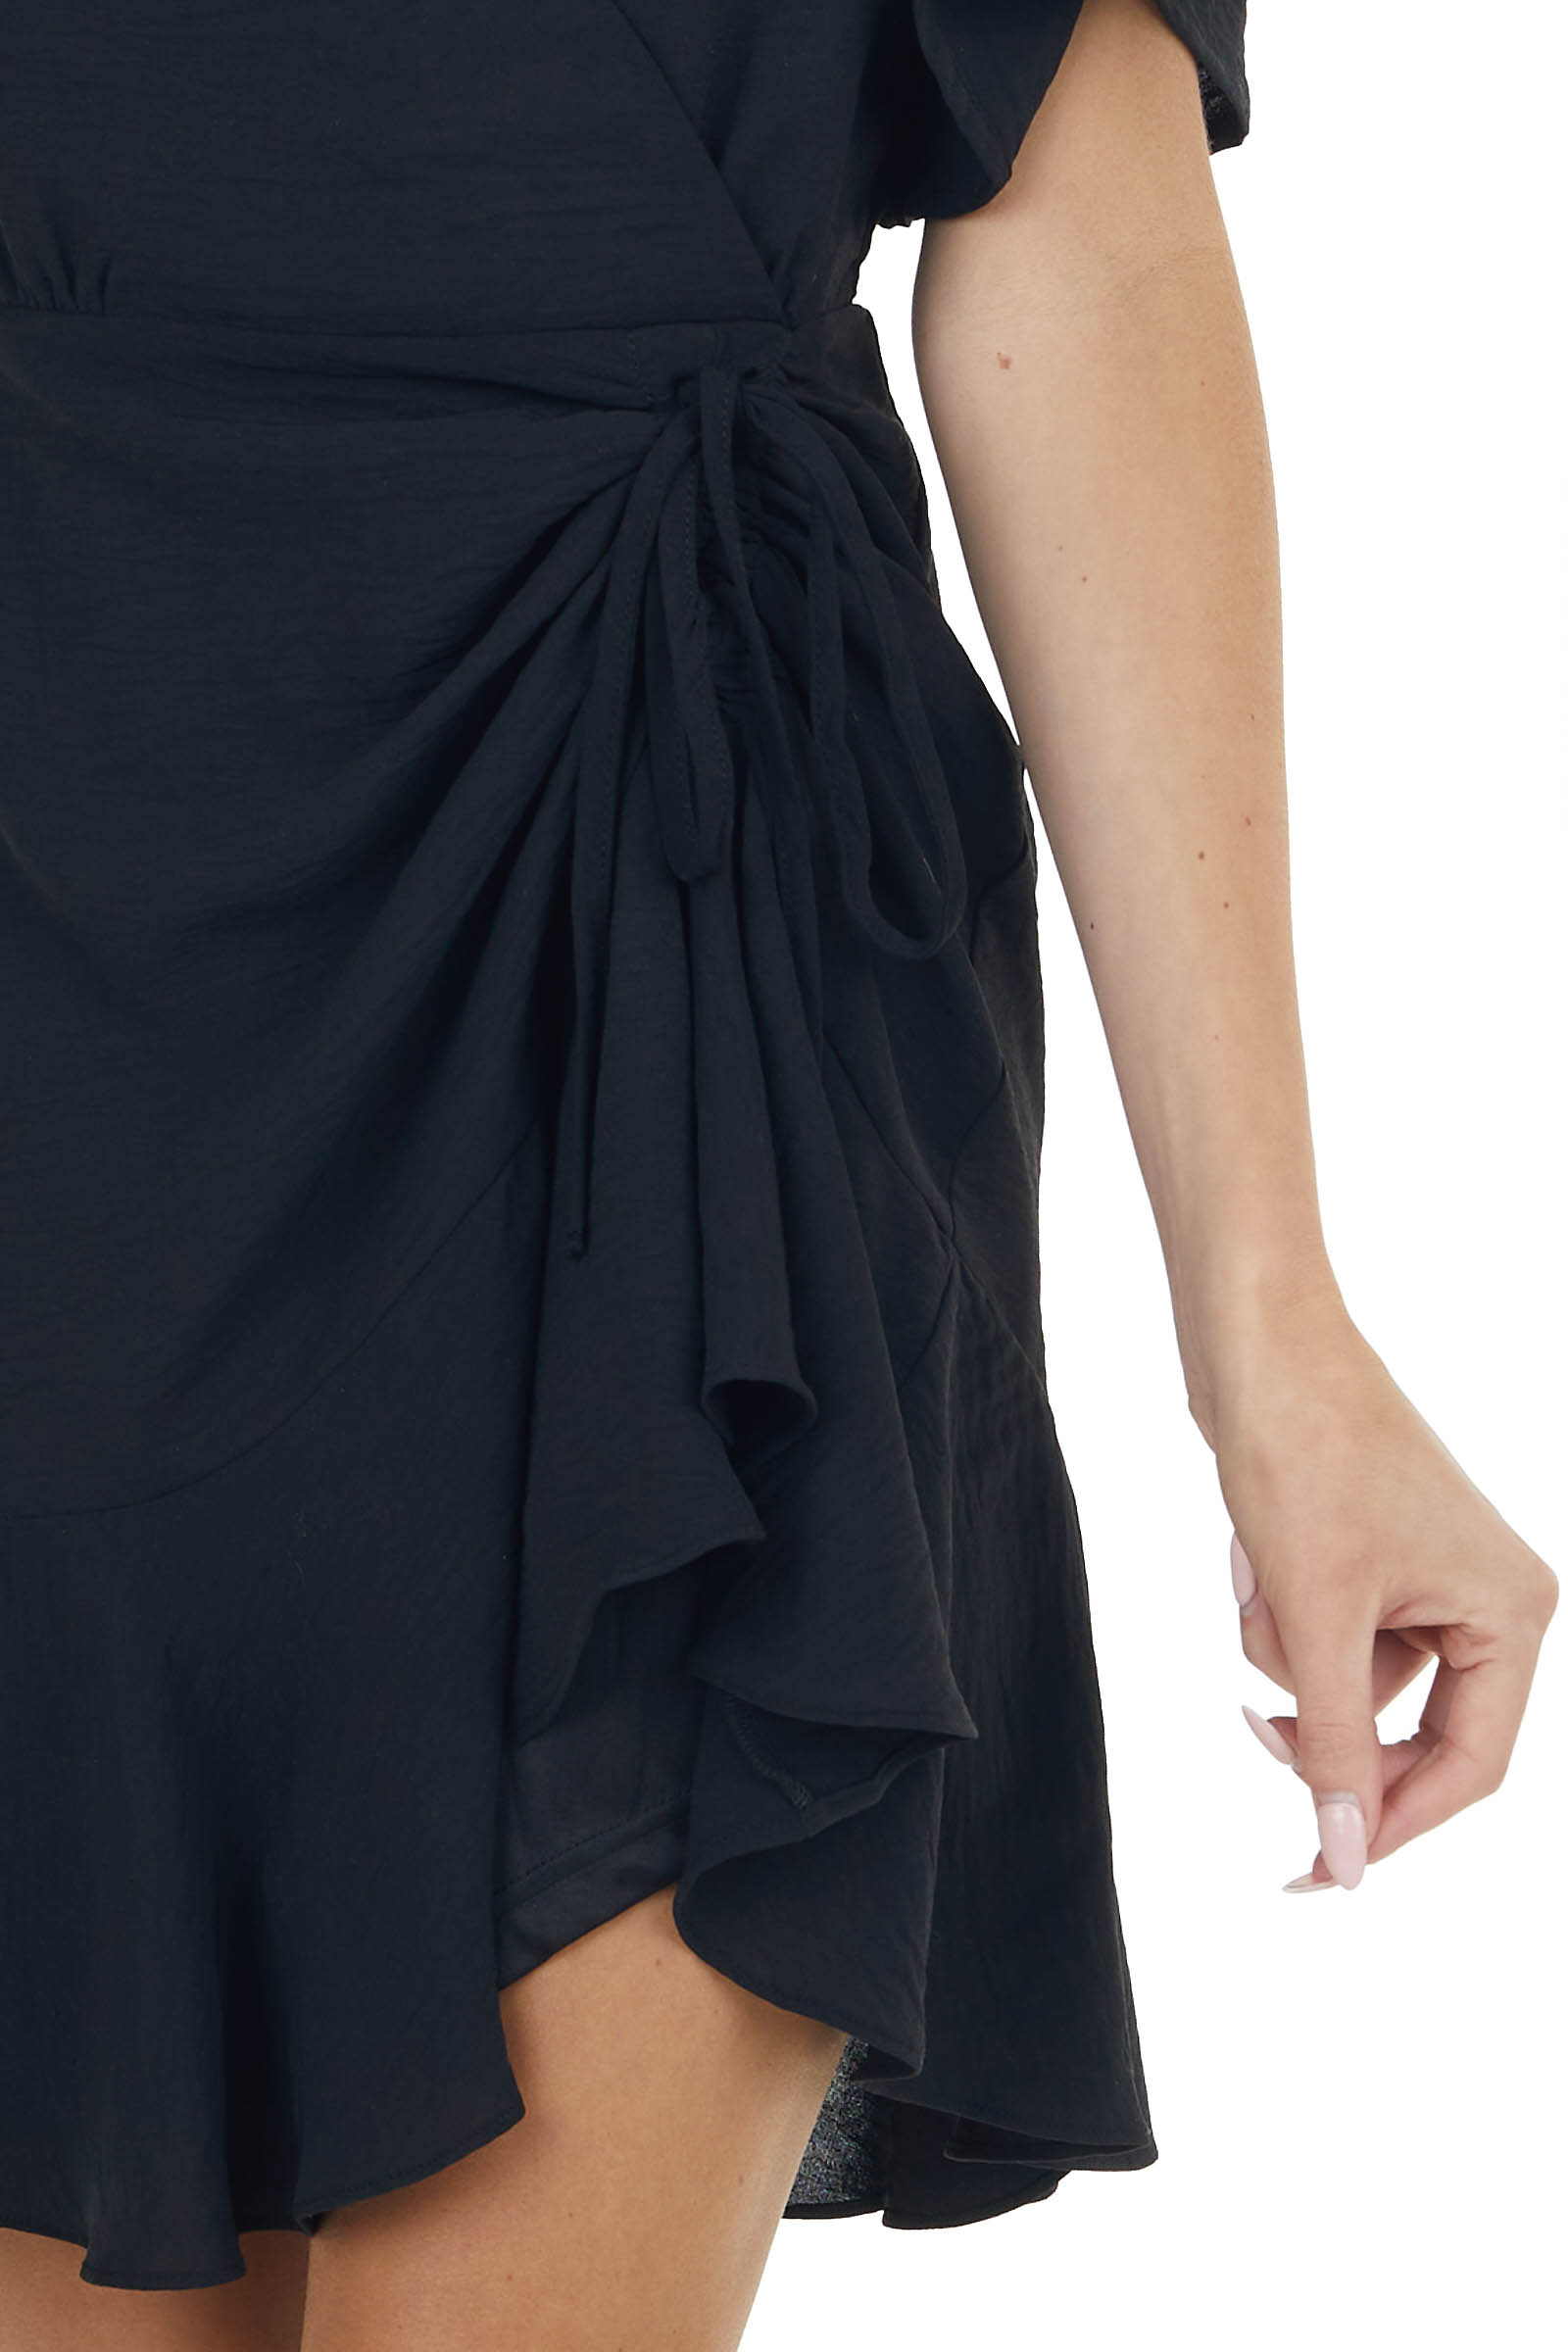 Black Surplice and Ruffled Mini Dress with Ruched Detail